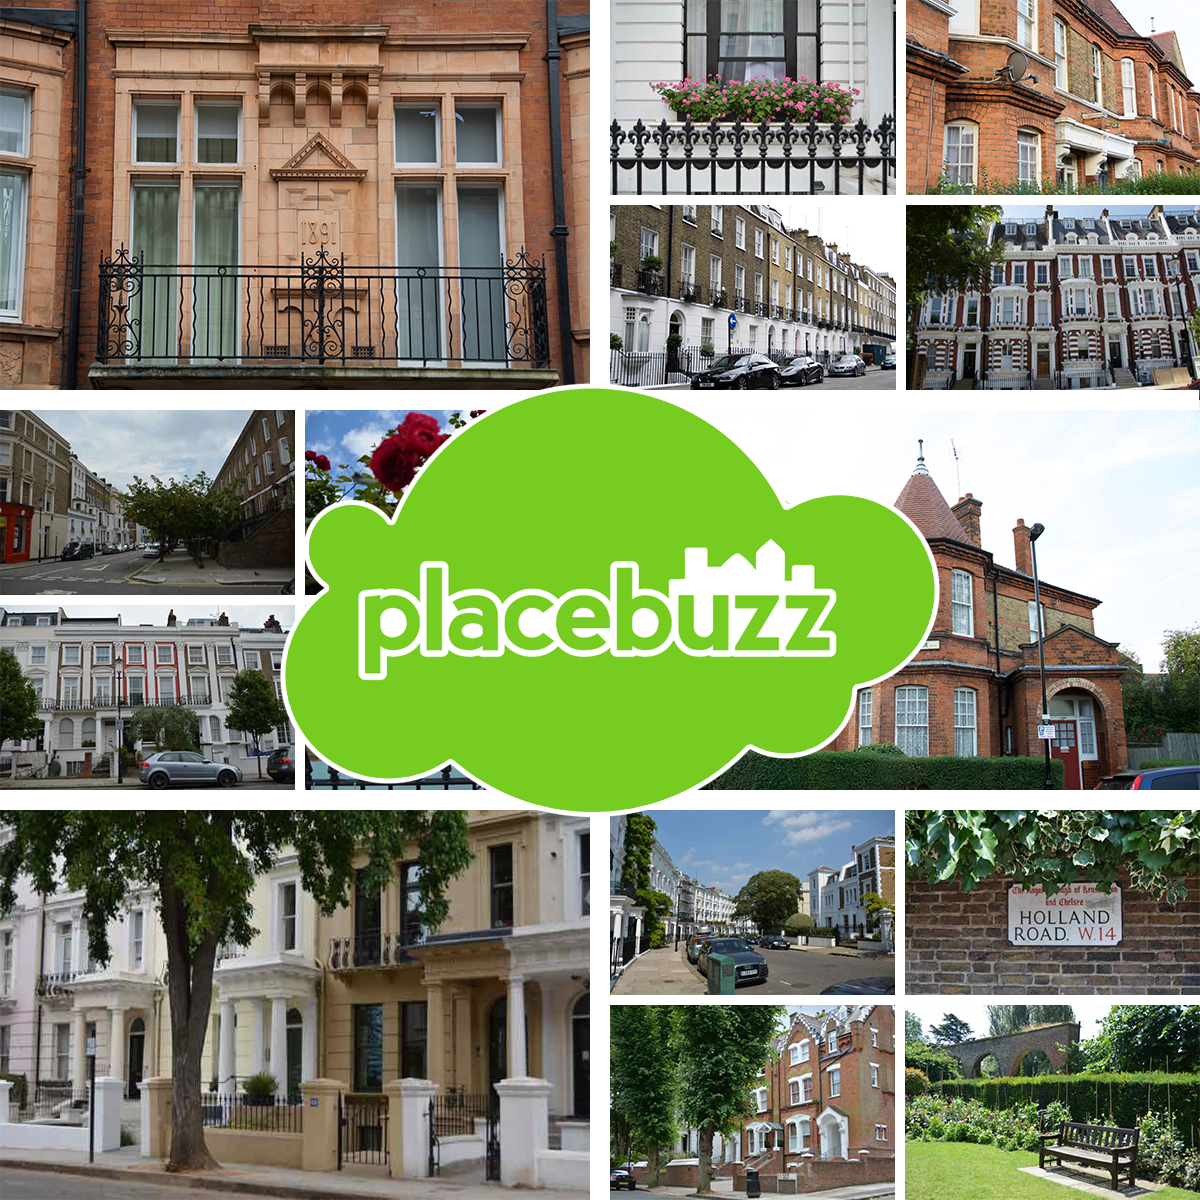 Placebuzz UK